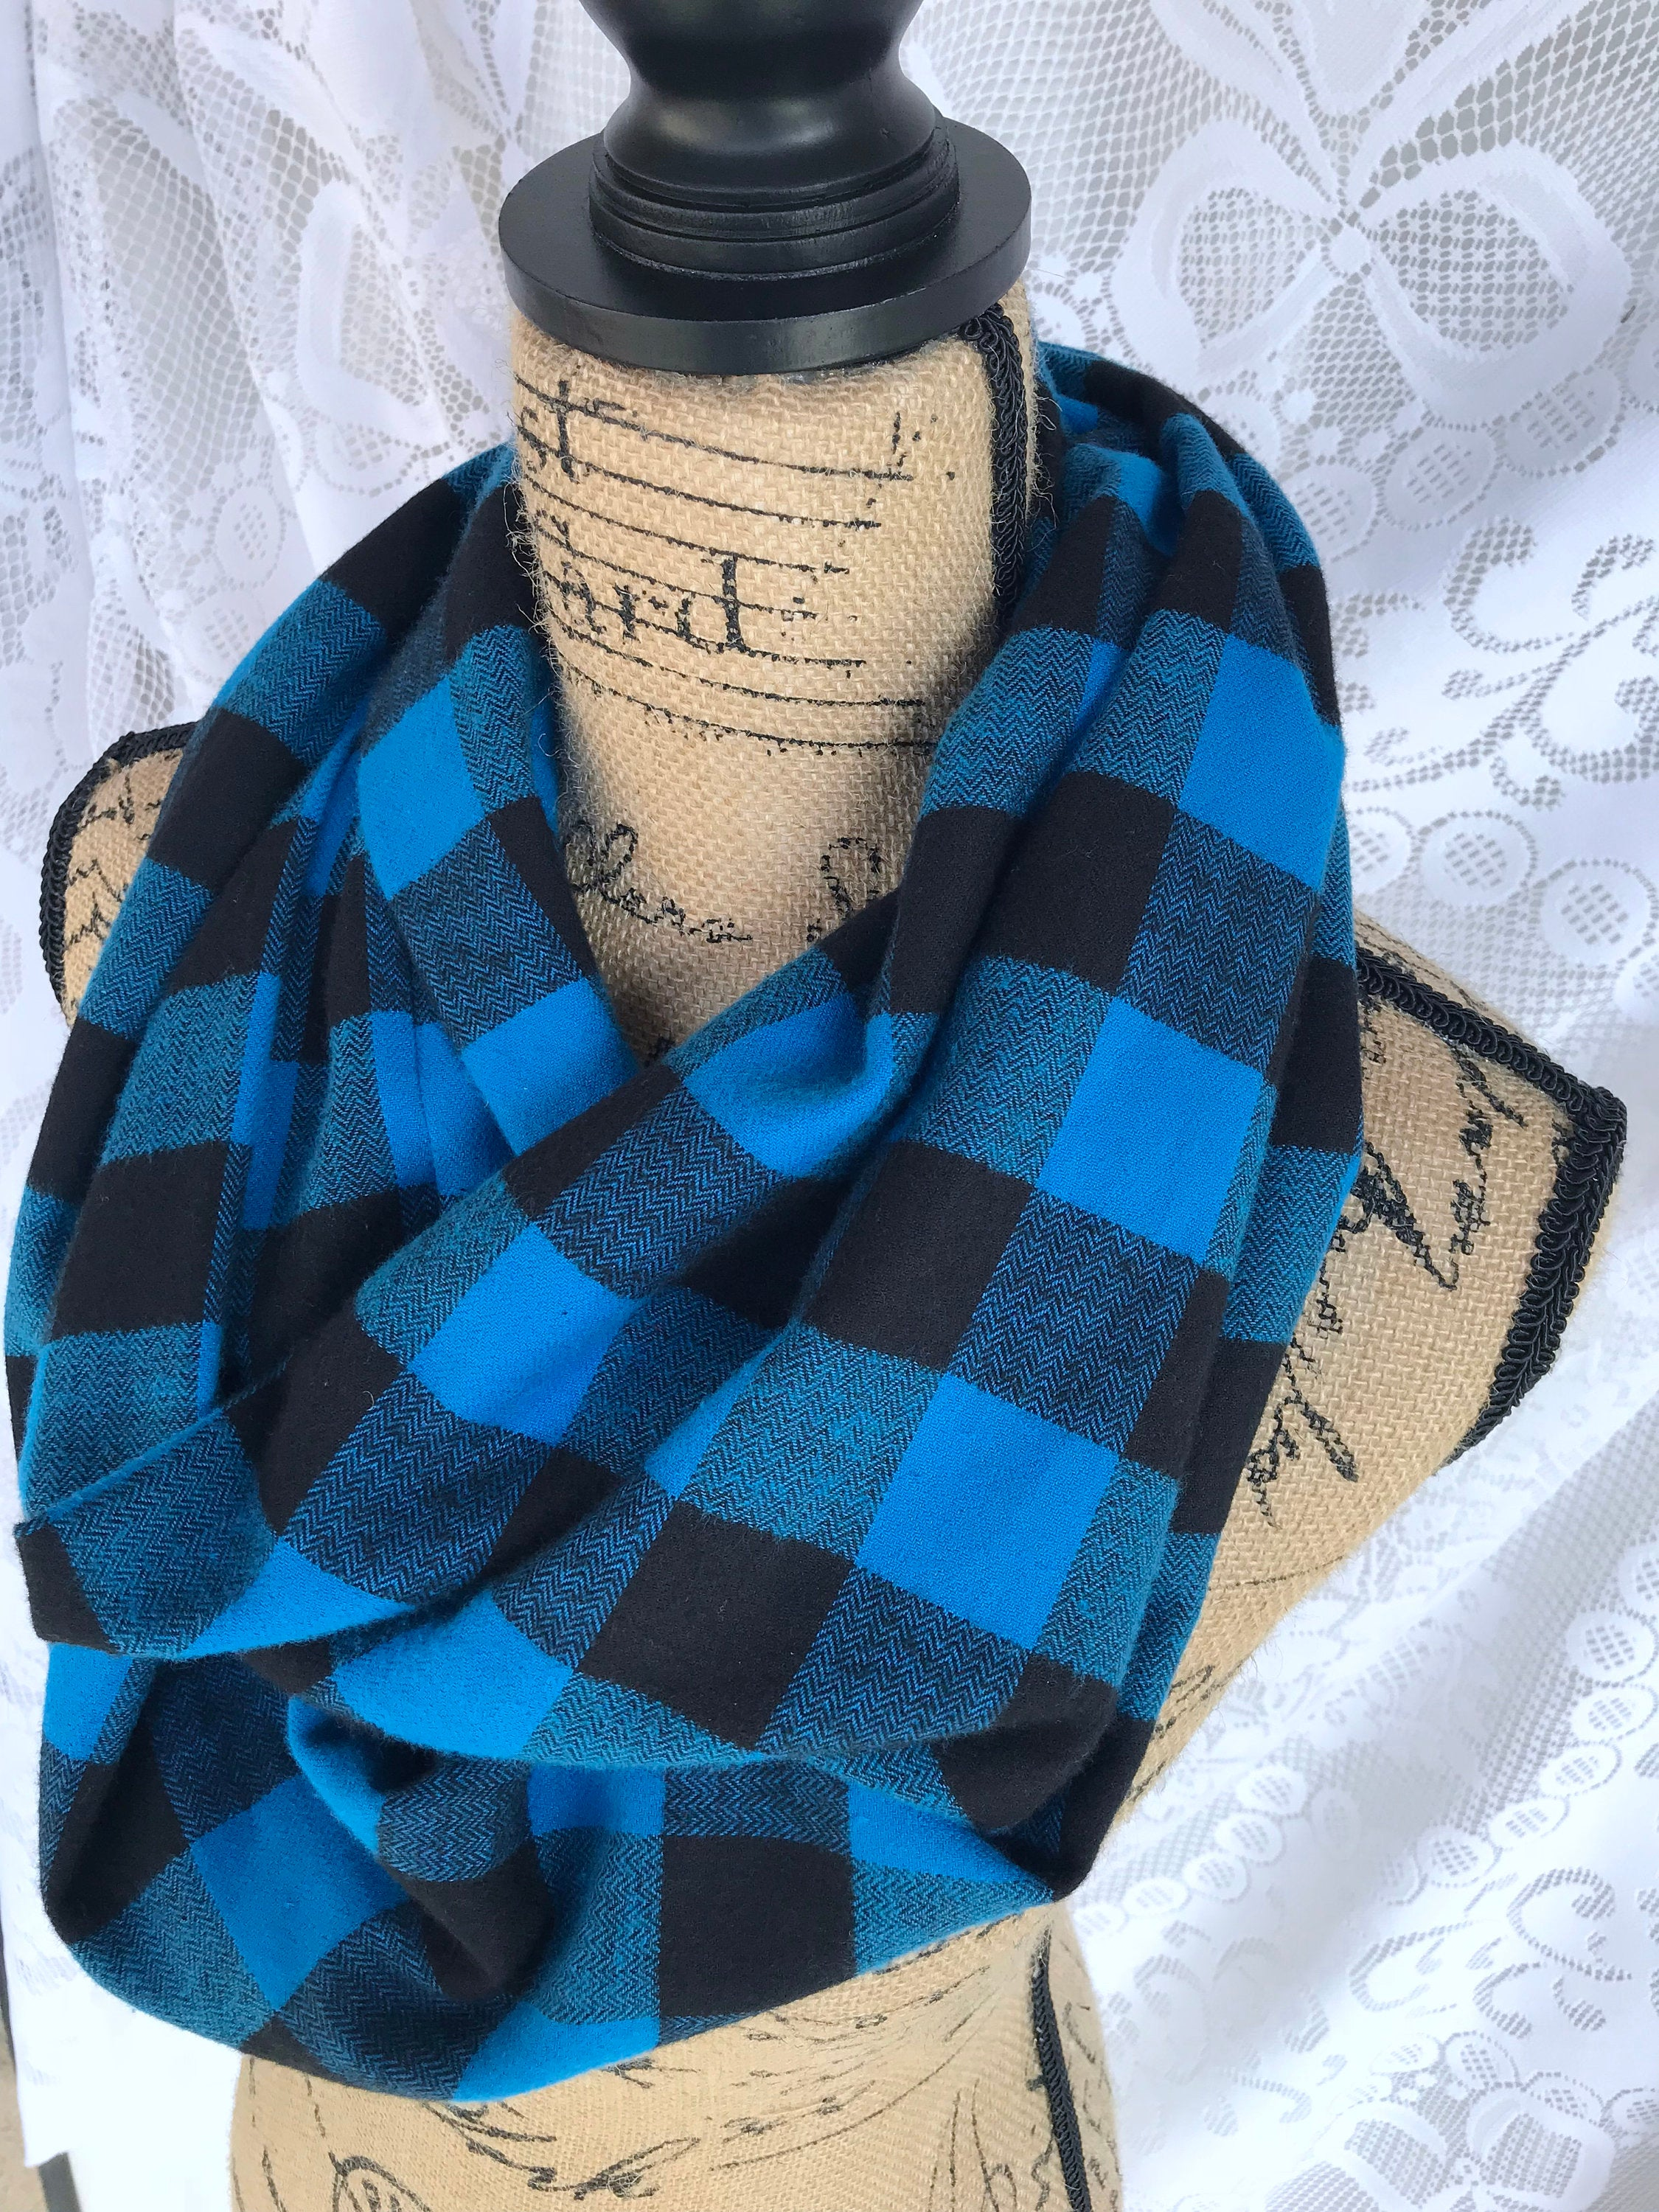 Blue and Black Buffalo Plaid Lightweight Flannel Plaid Infinity or Blanket Scarf